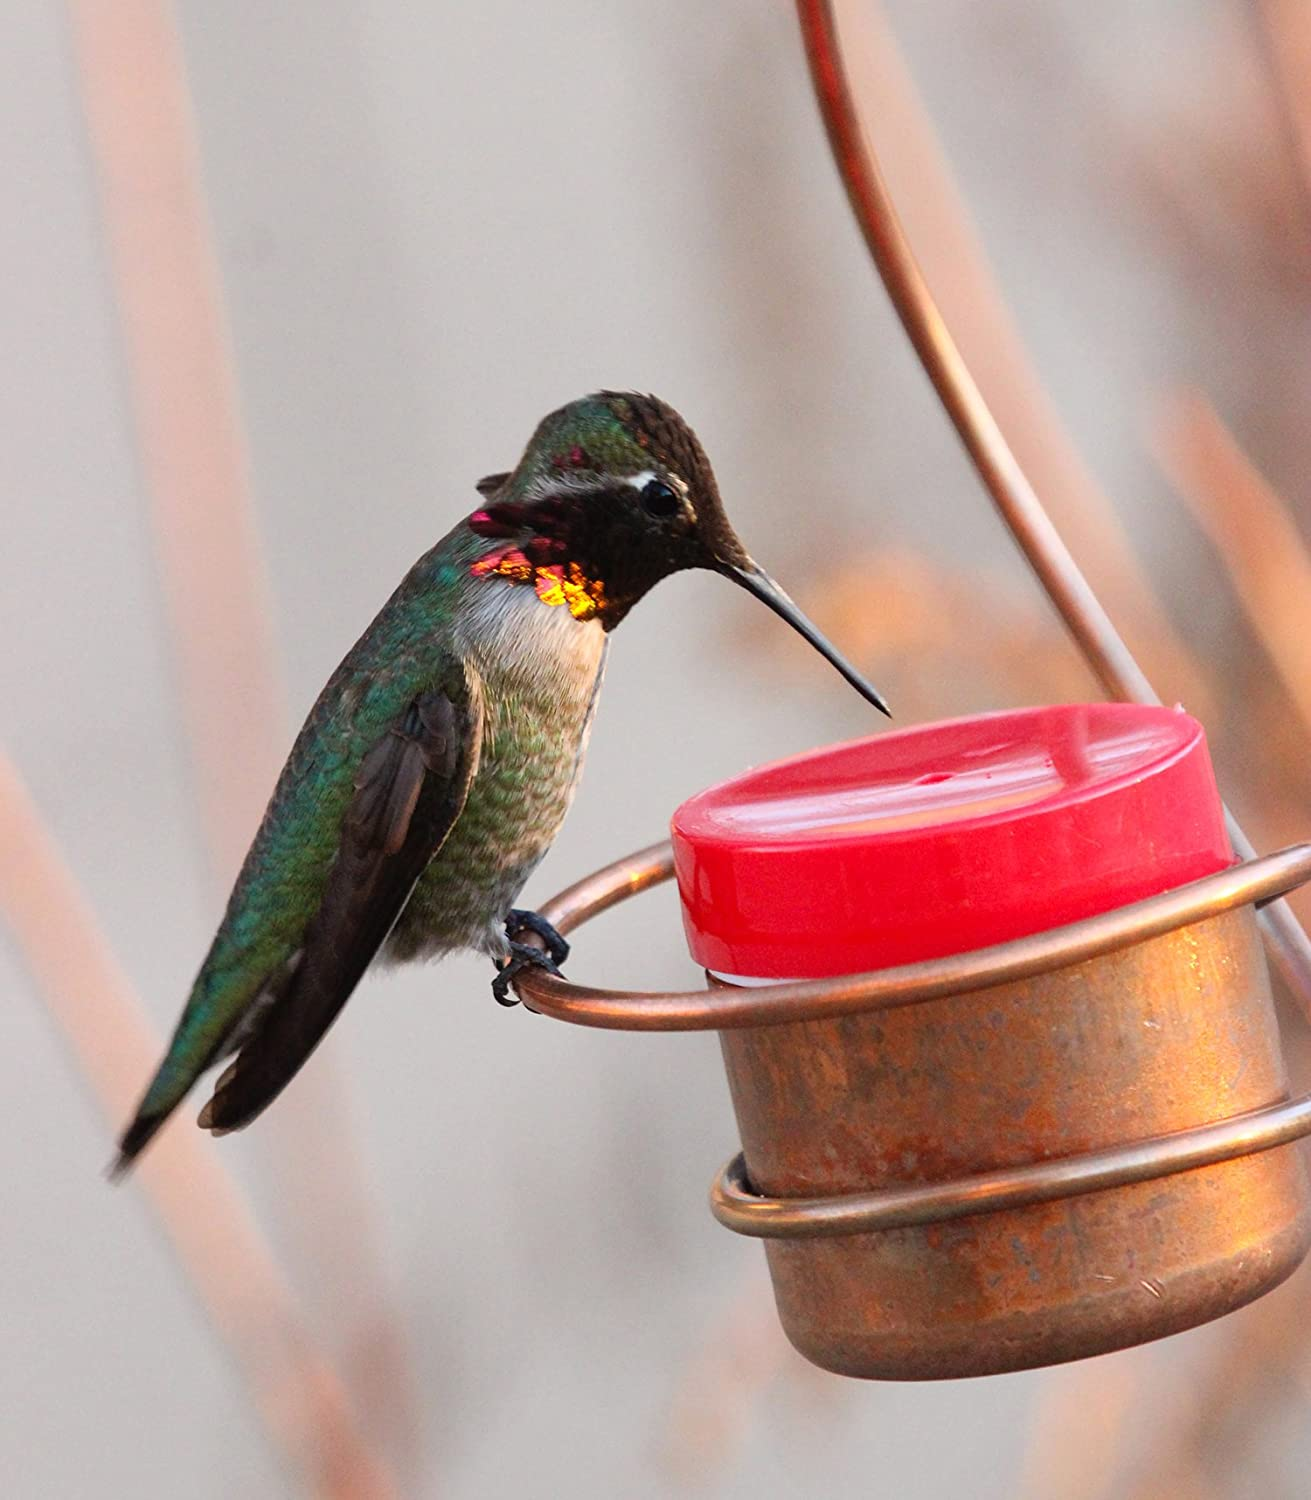 ways to feeder a gallon one step wikihow clean hummingbird version